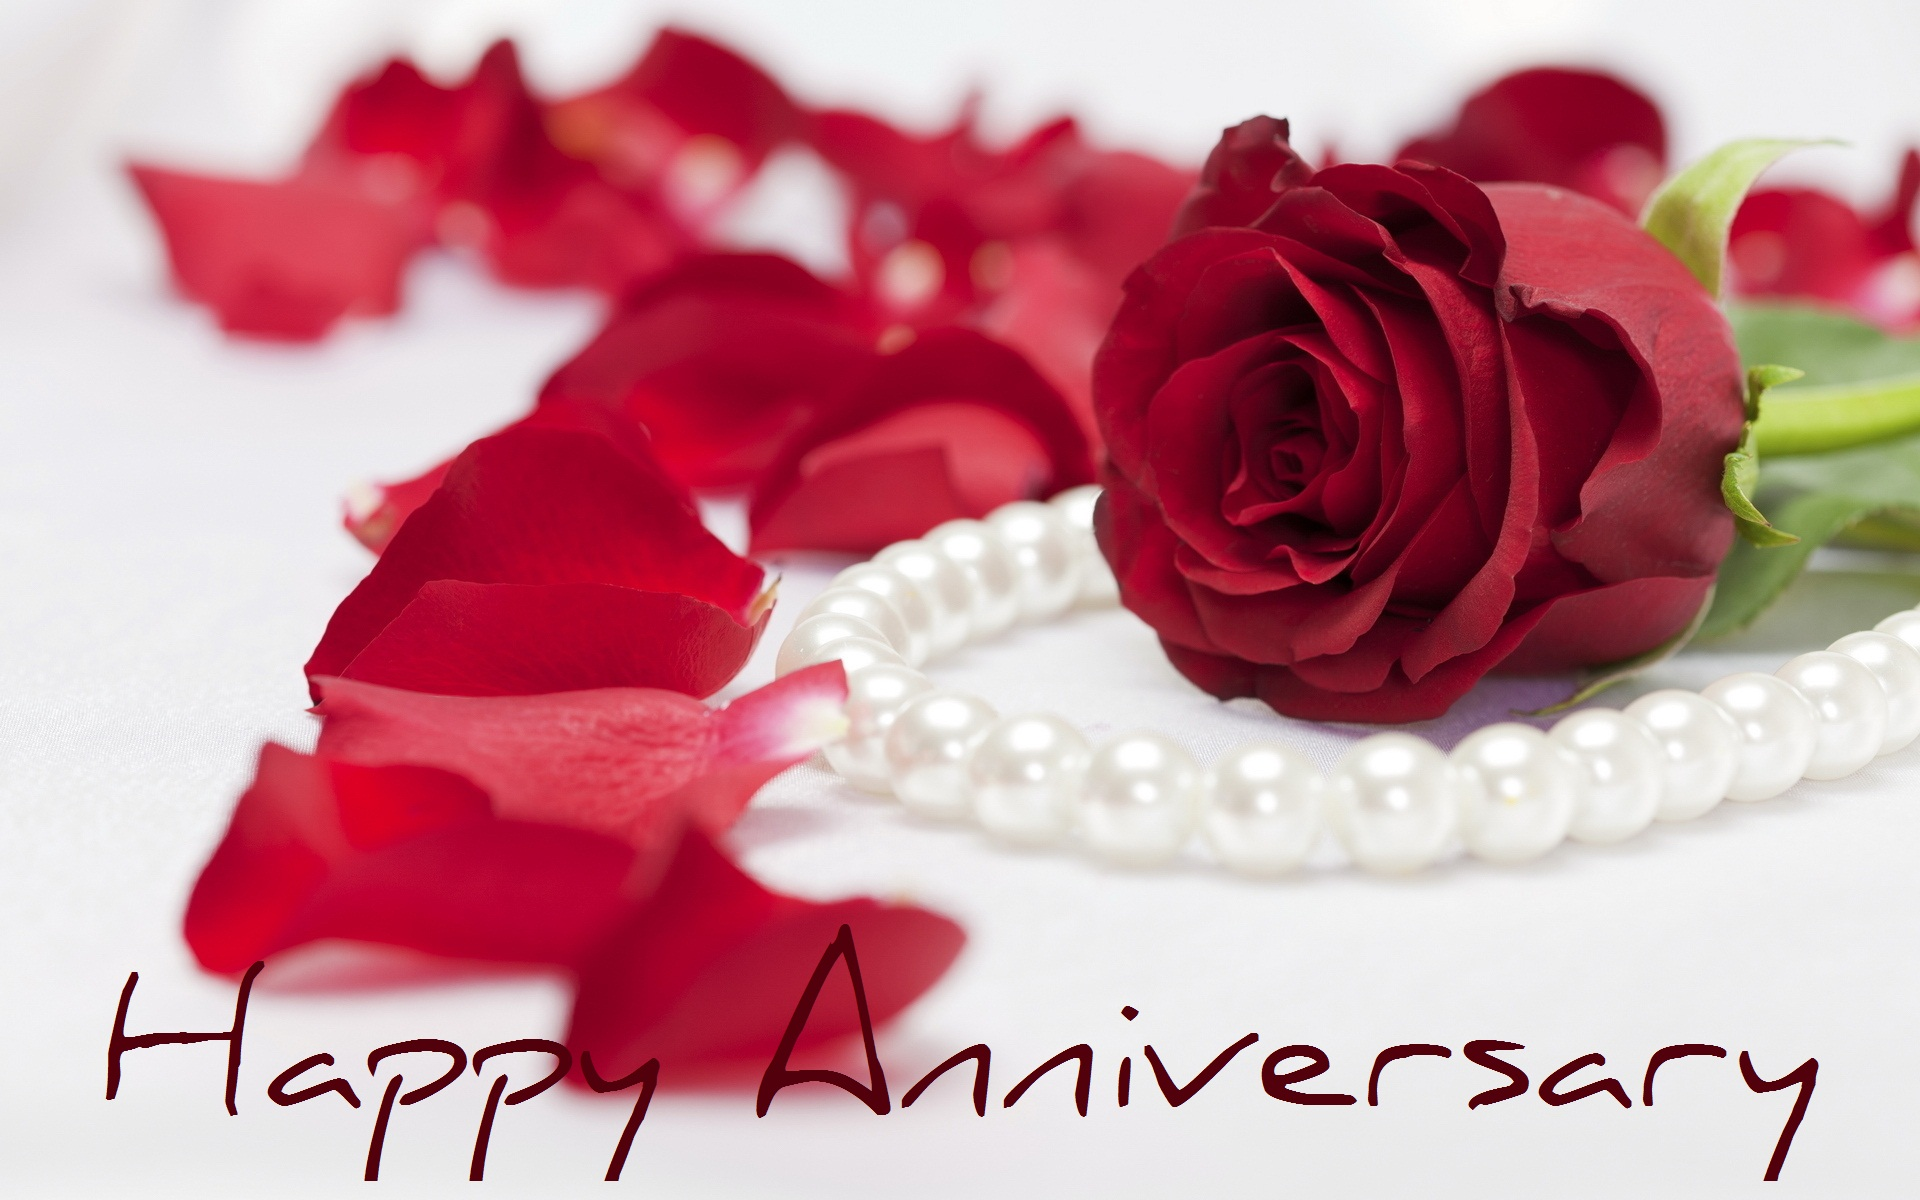 Happy Anniversary Cakes Gifts And Msg Daily Roabox